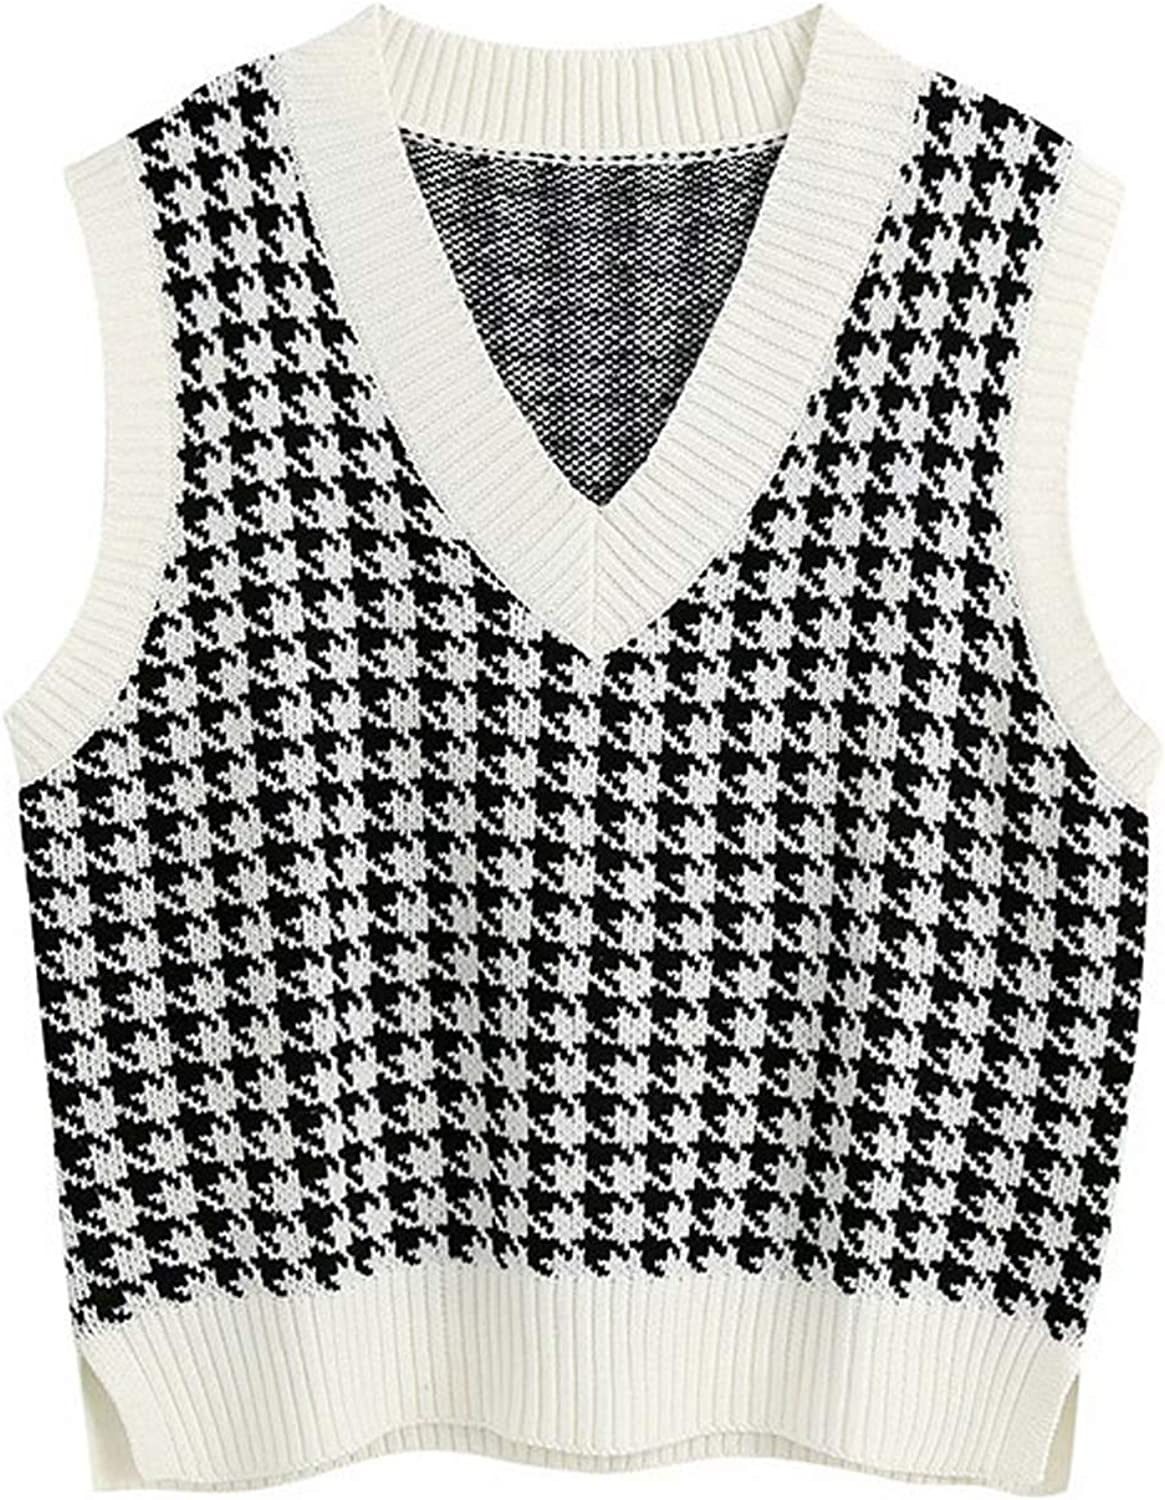 Women Oversized Houndstooth Sweater Vest Vintage Knitted V Neck Sleeveless Pullover Loose 90s Knitwear Tank Tops